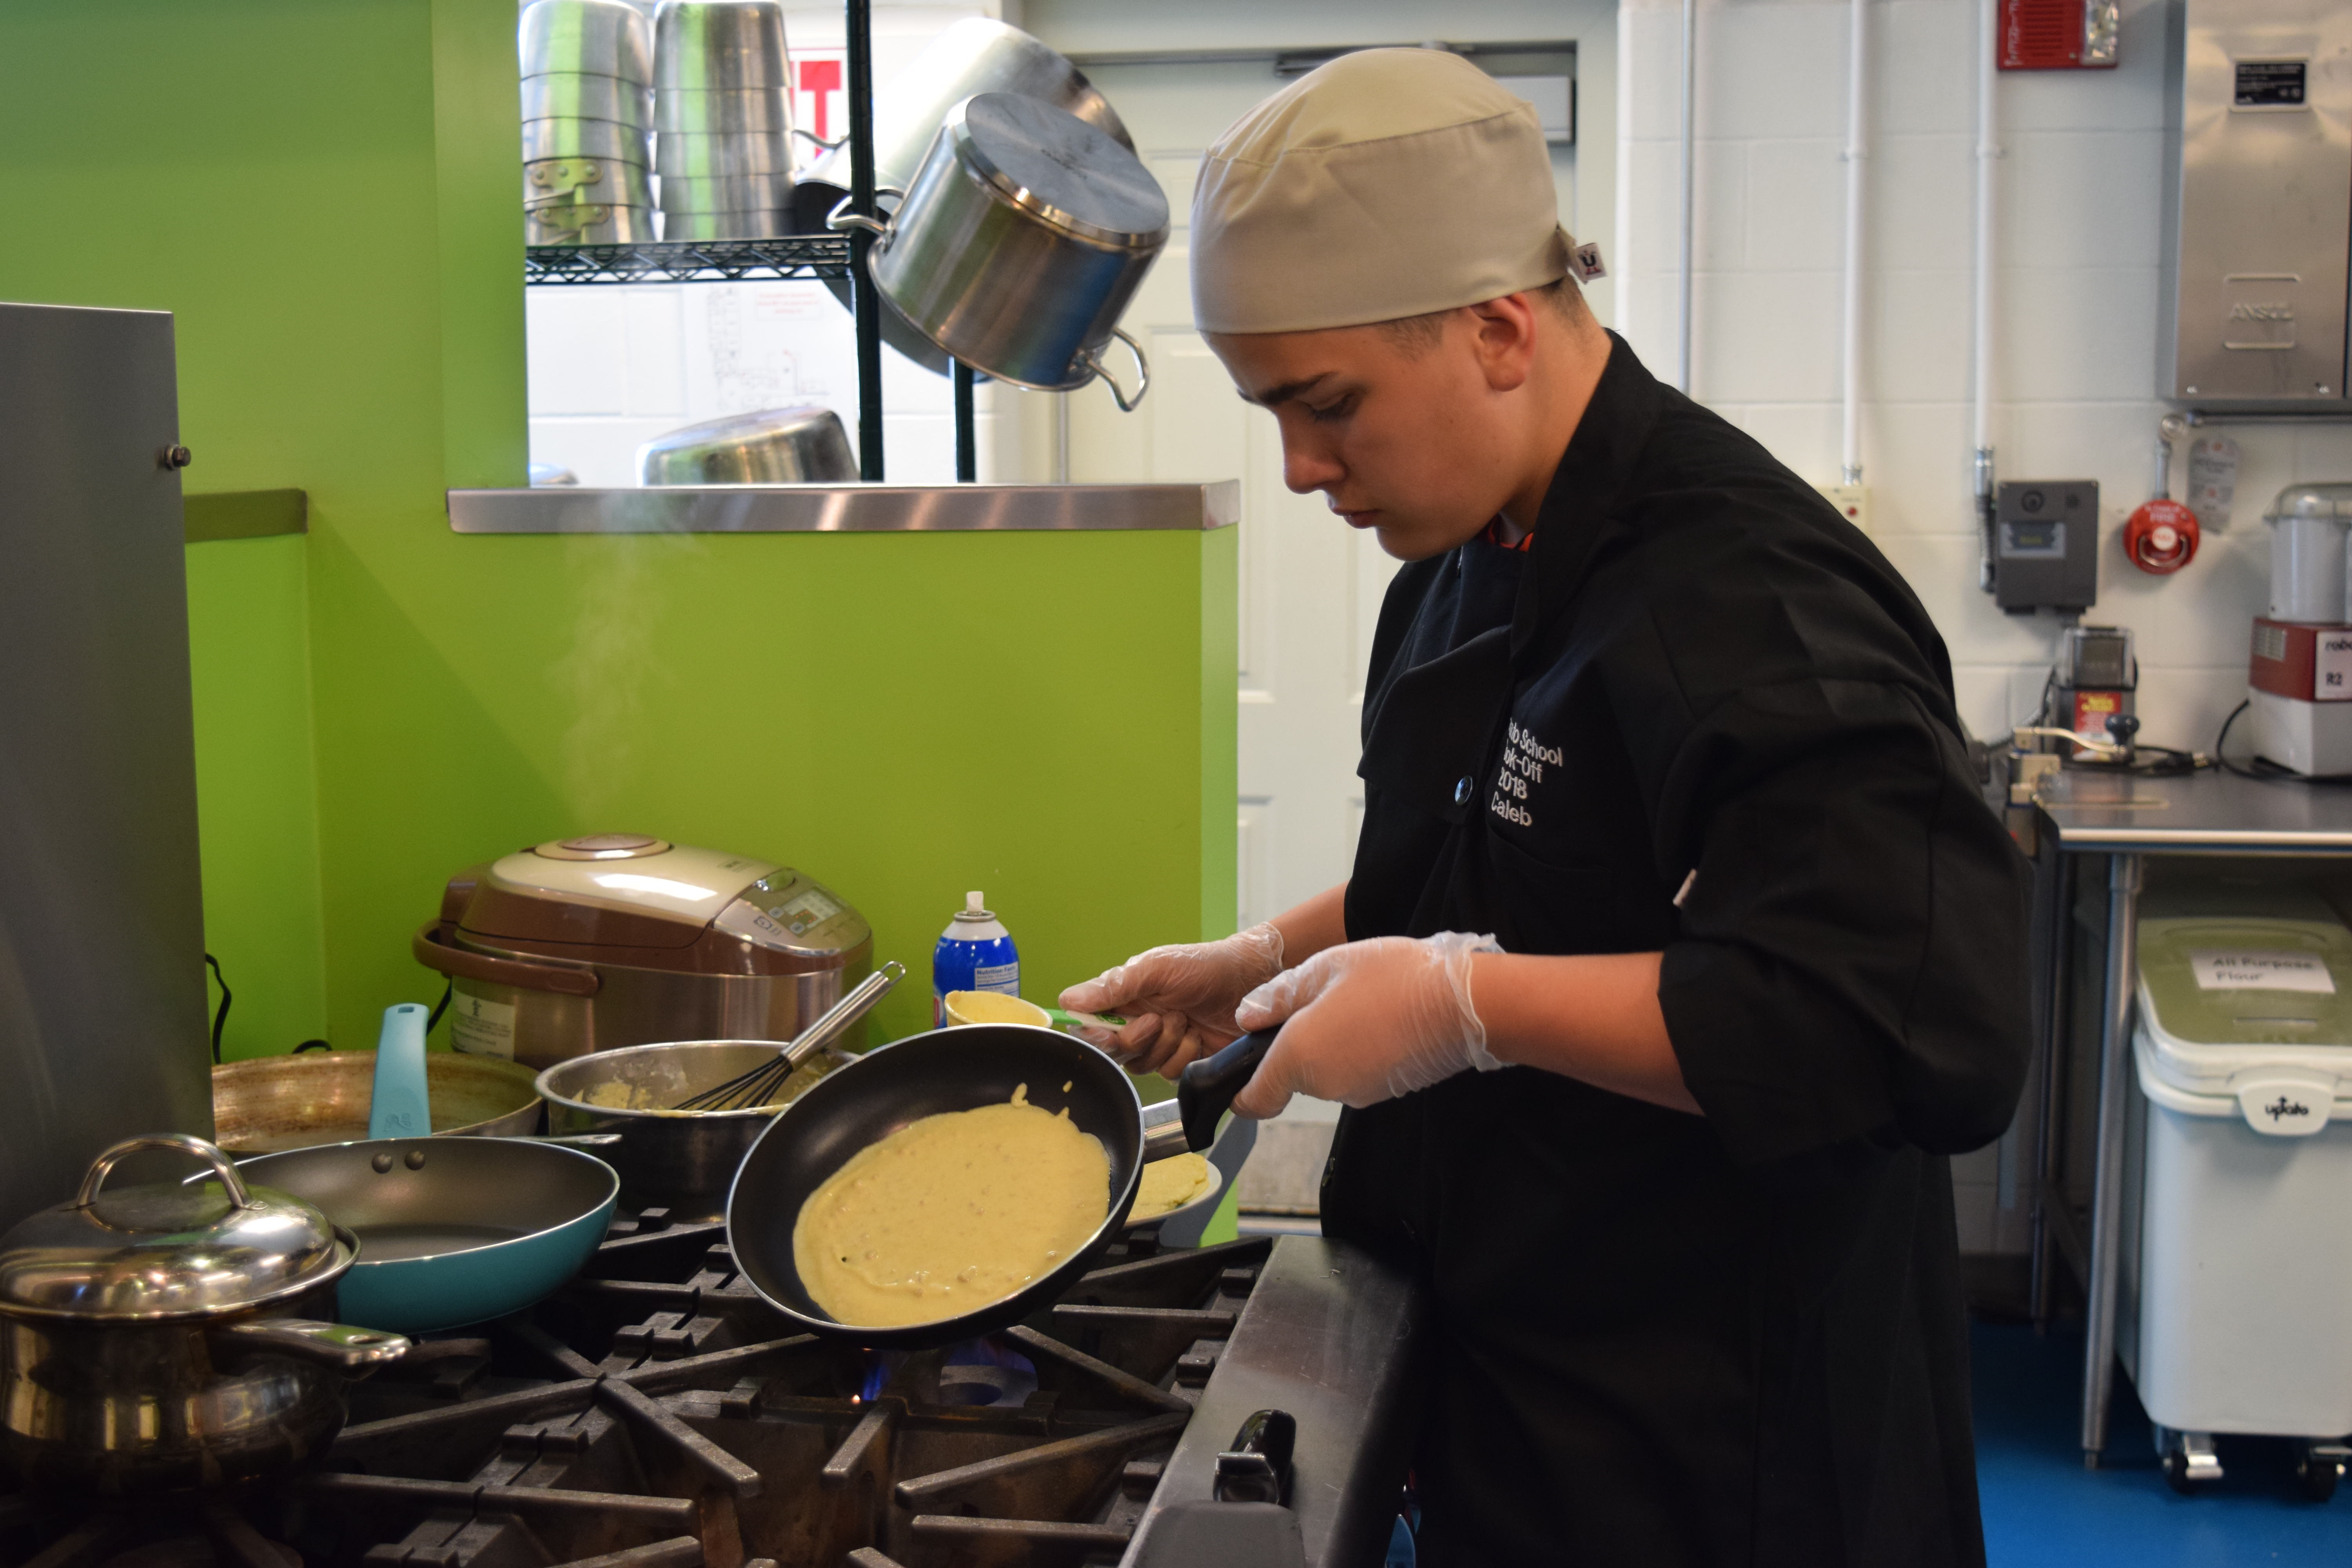 Caleb Pratt, 7th grade student from Skowhegan Area Middle School making the crepes for breakfast